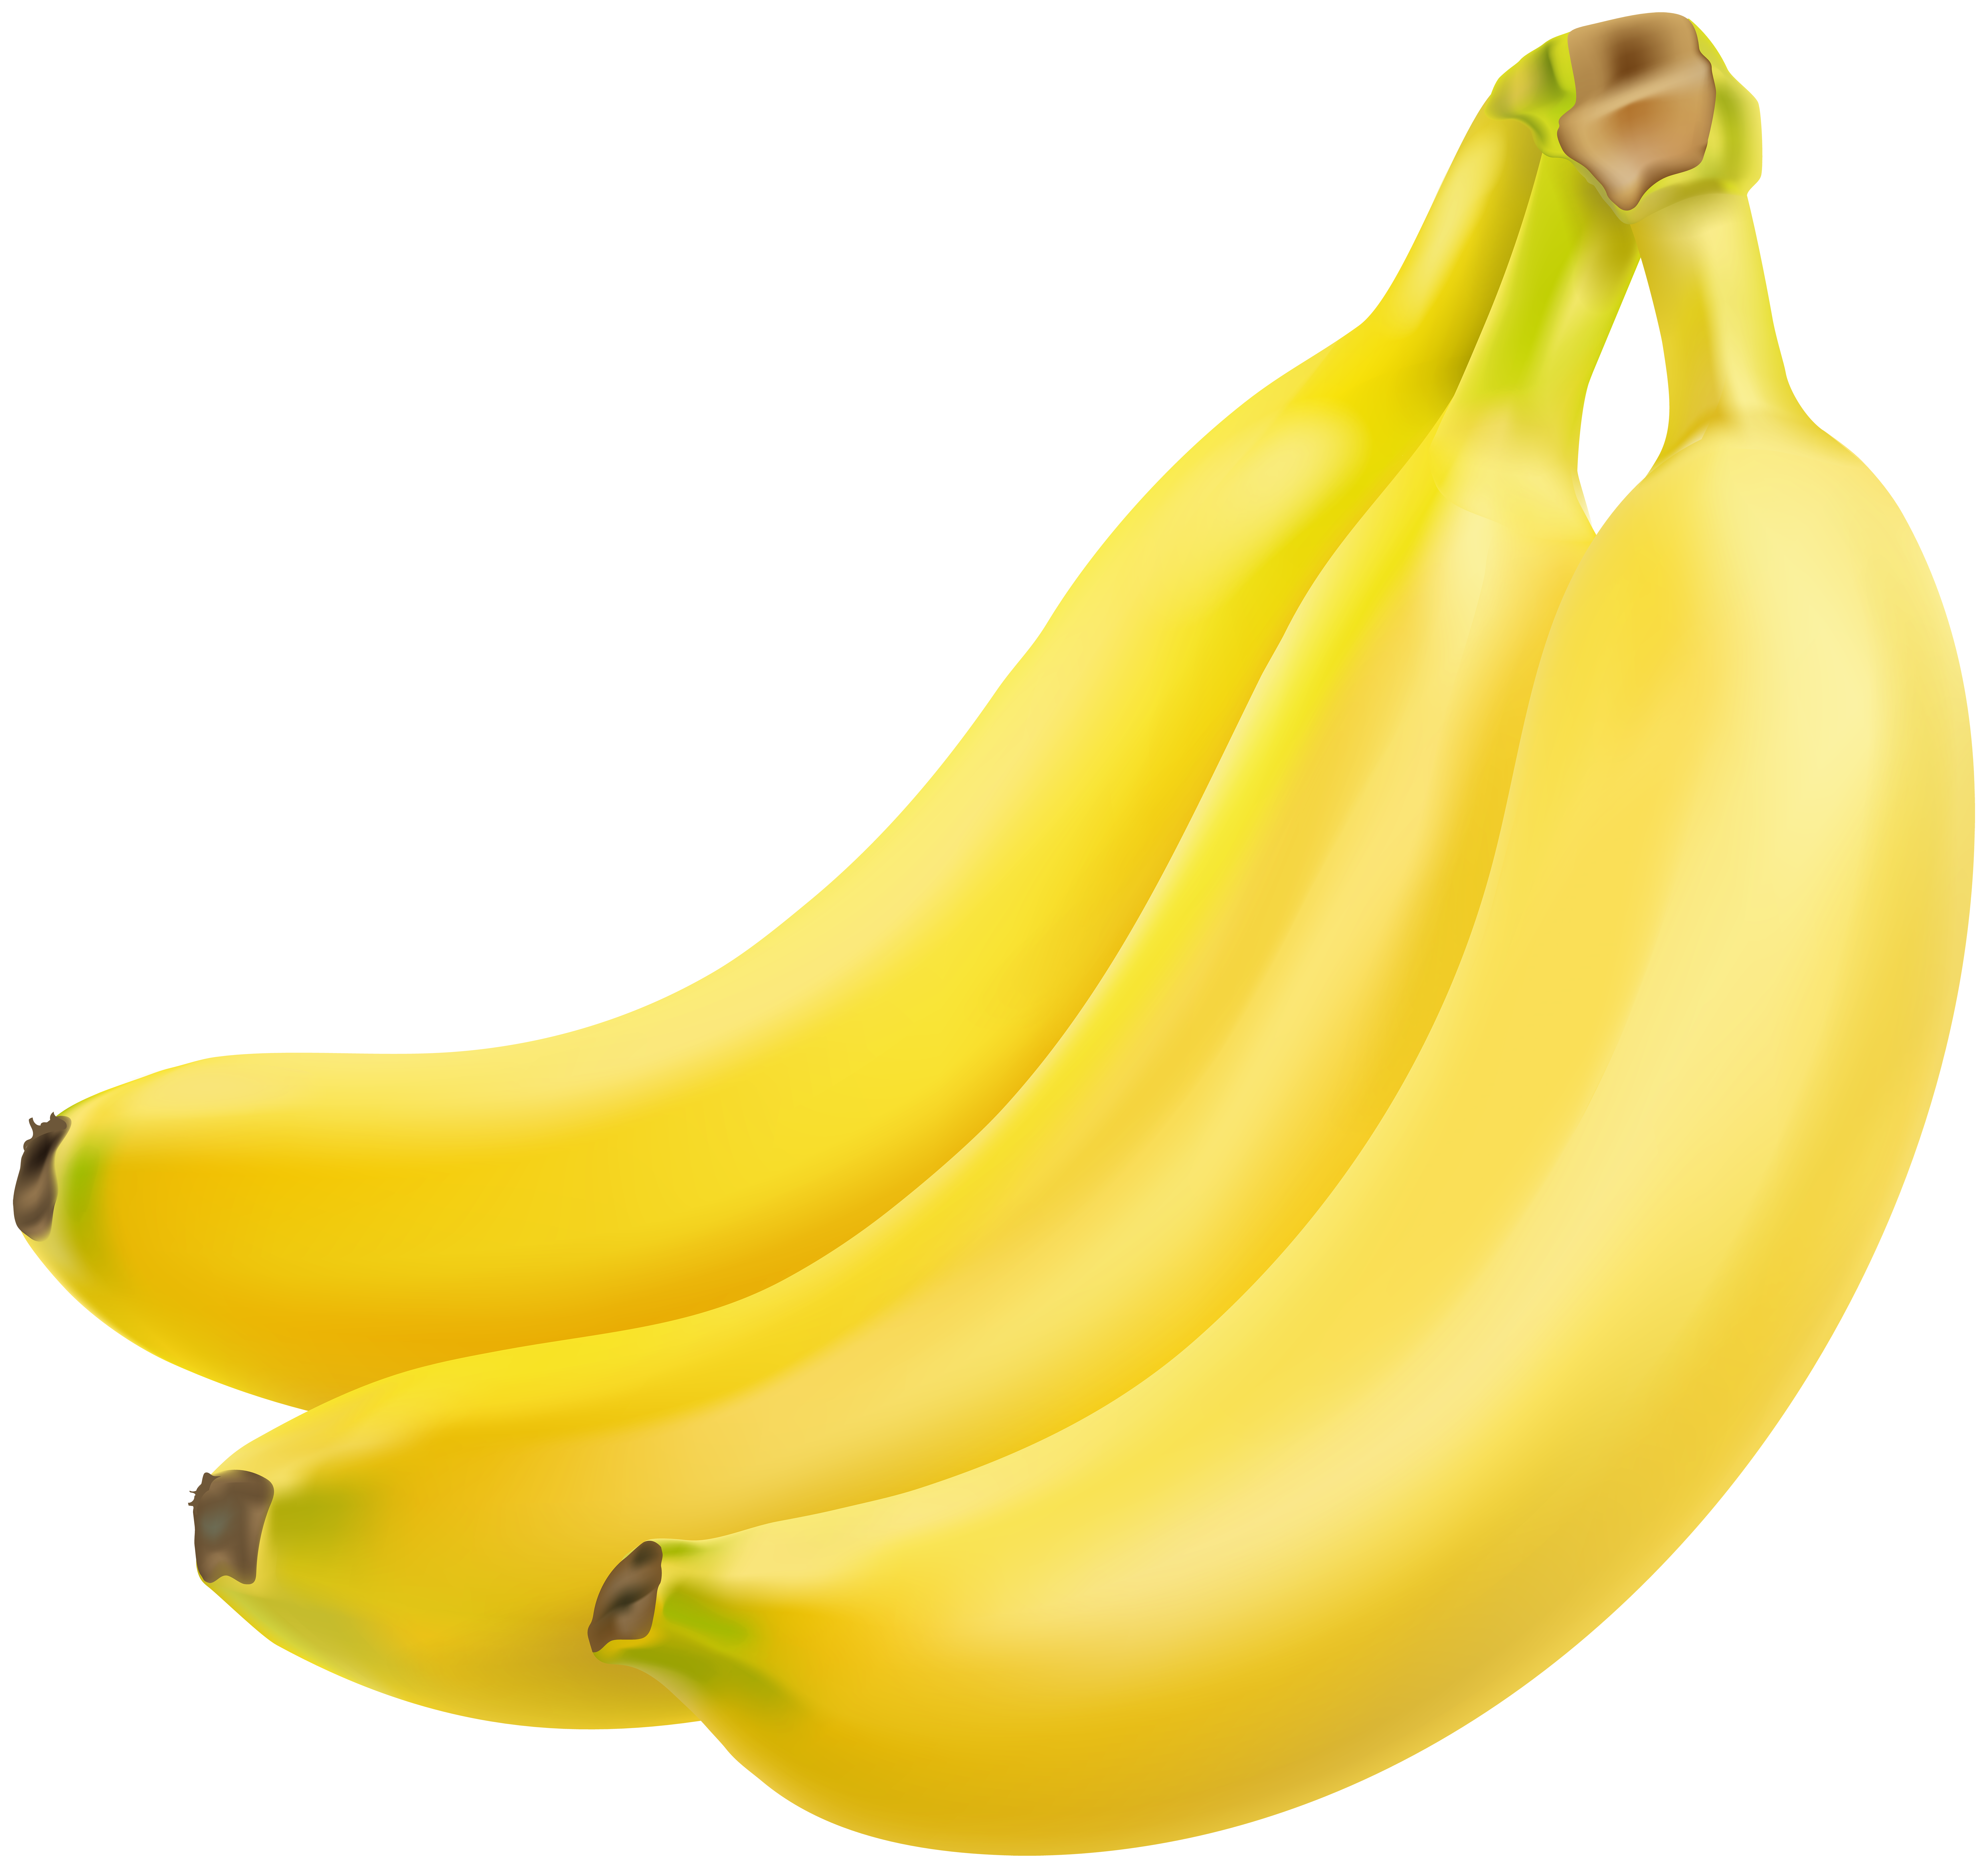 Bananas transparent high quality. Image gallery yopriceville view